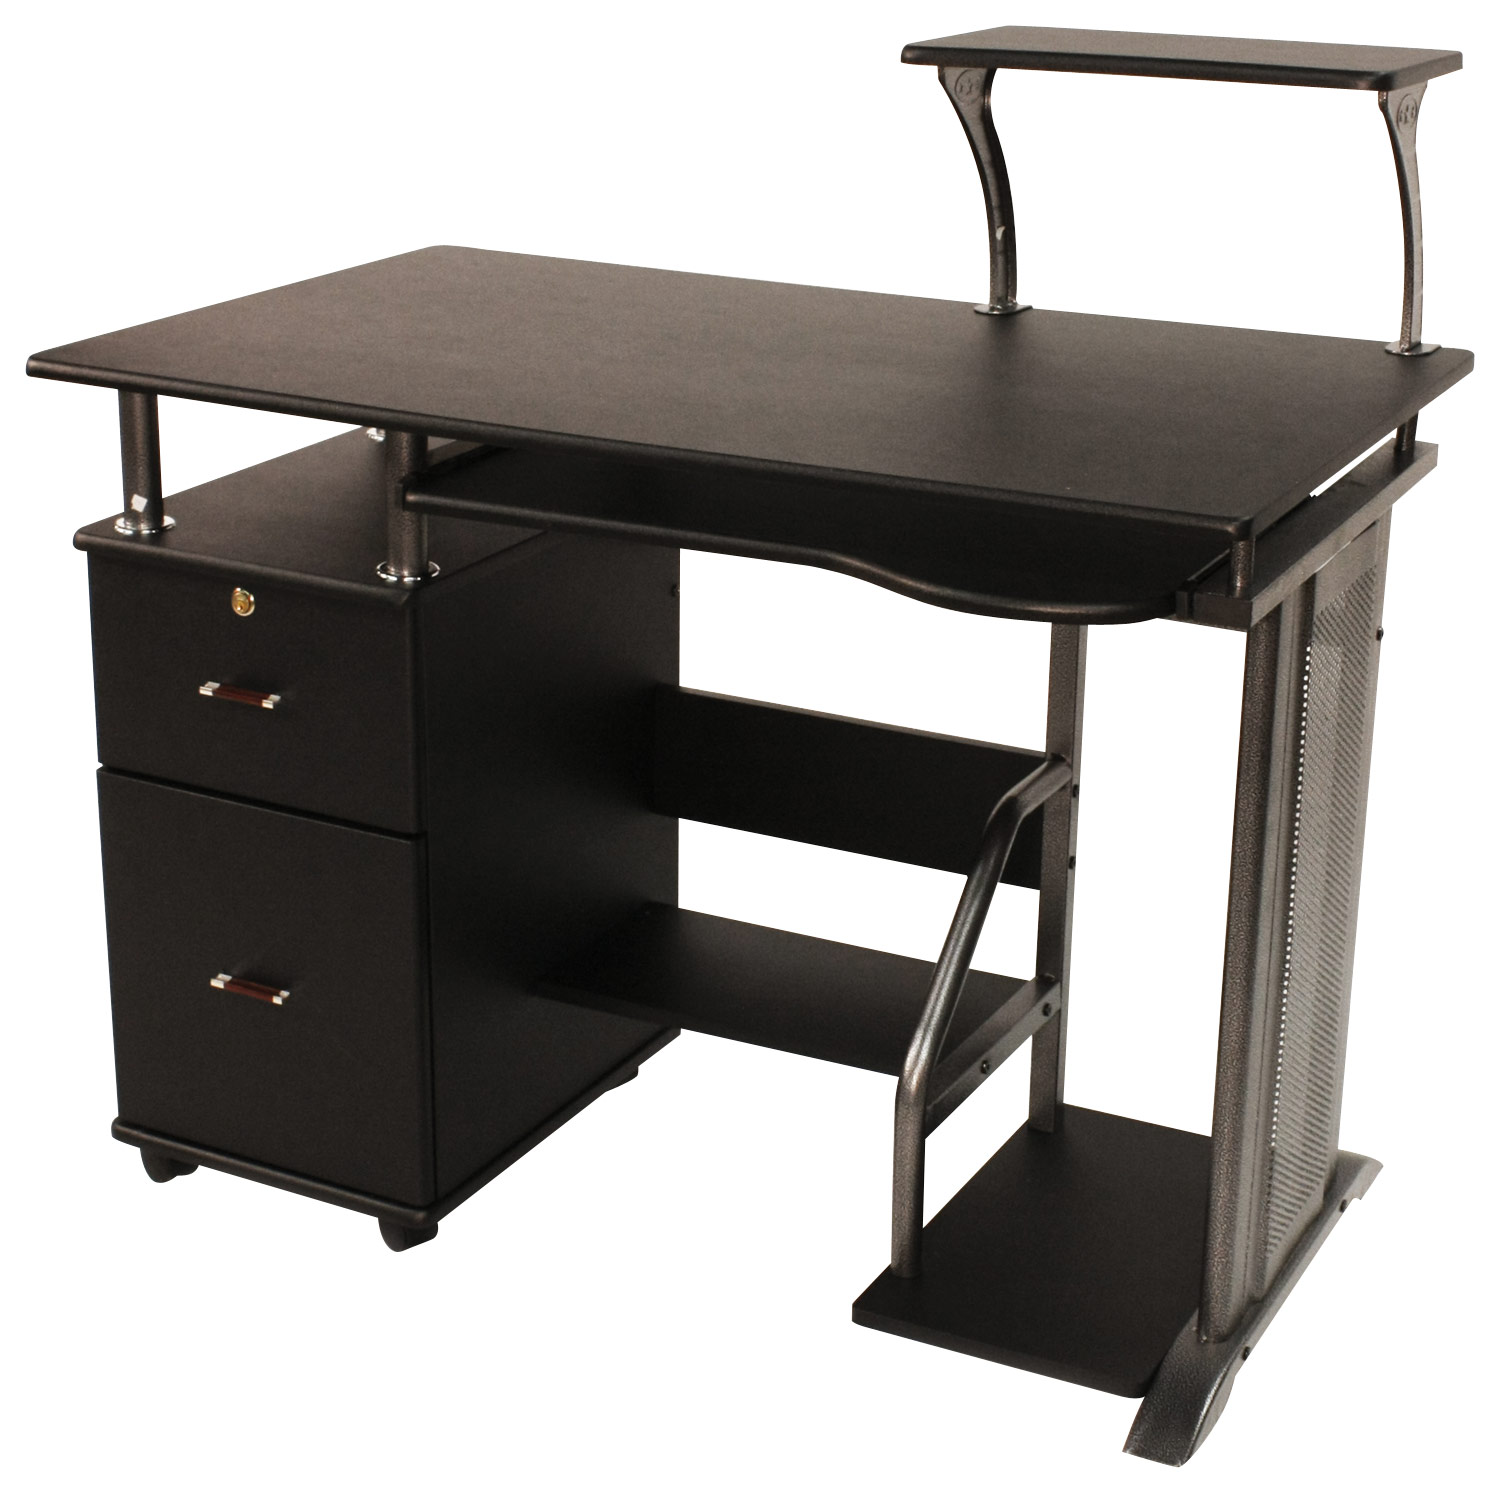 Comfort Products Inc. Rothmin Computer Desk Black 50-100505 - Best Buy